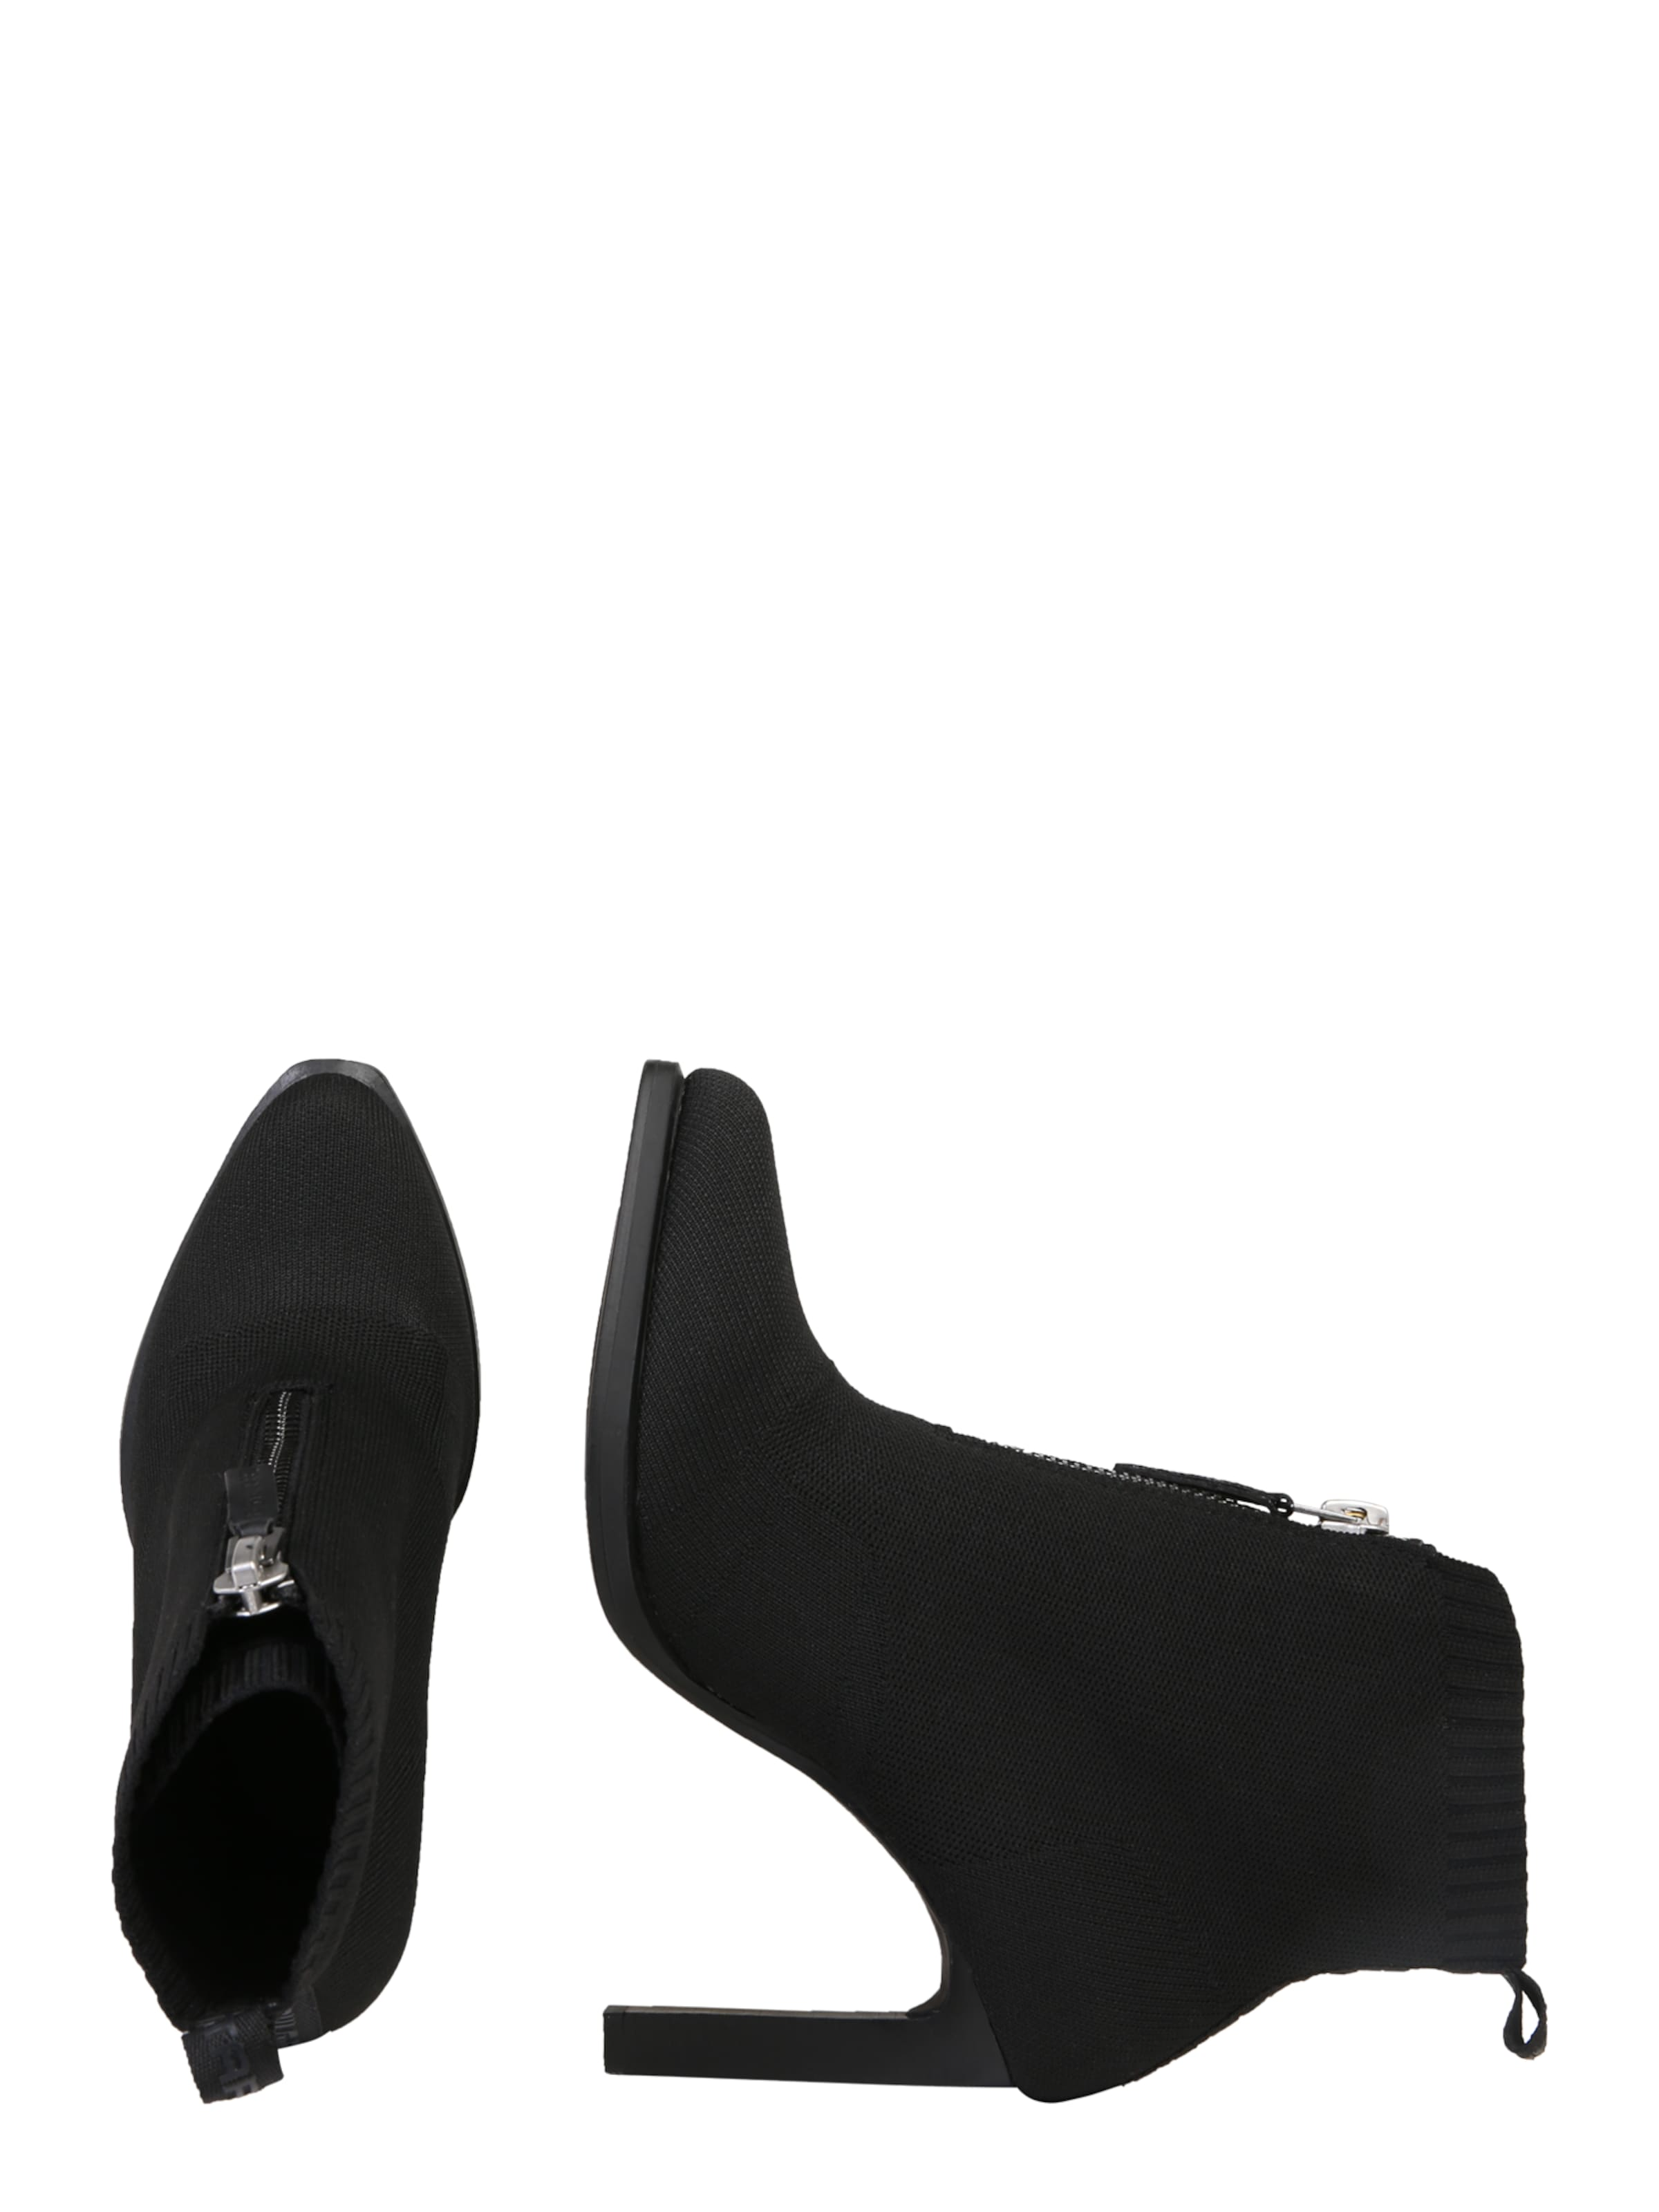 En Bottines G Raw star 'strett Heel' Noir wO0Pnk